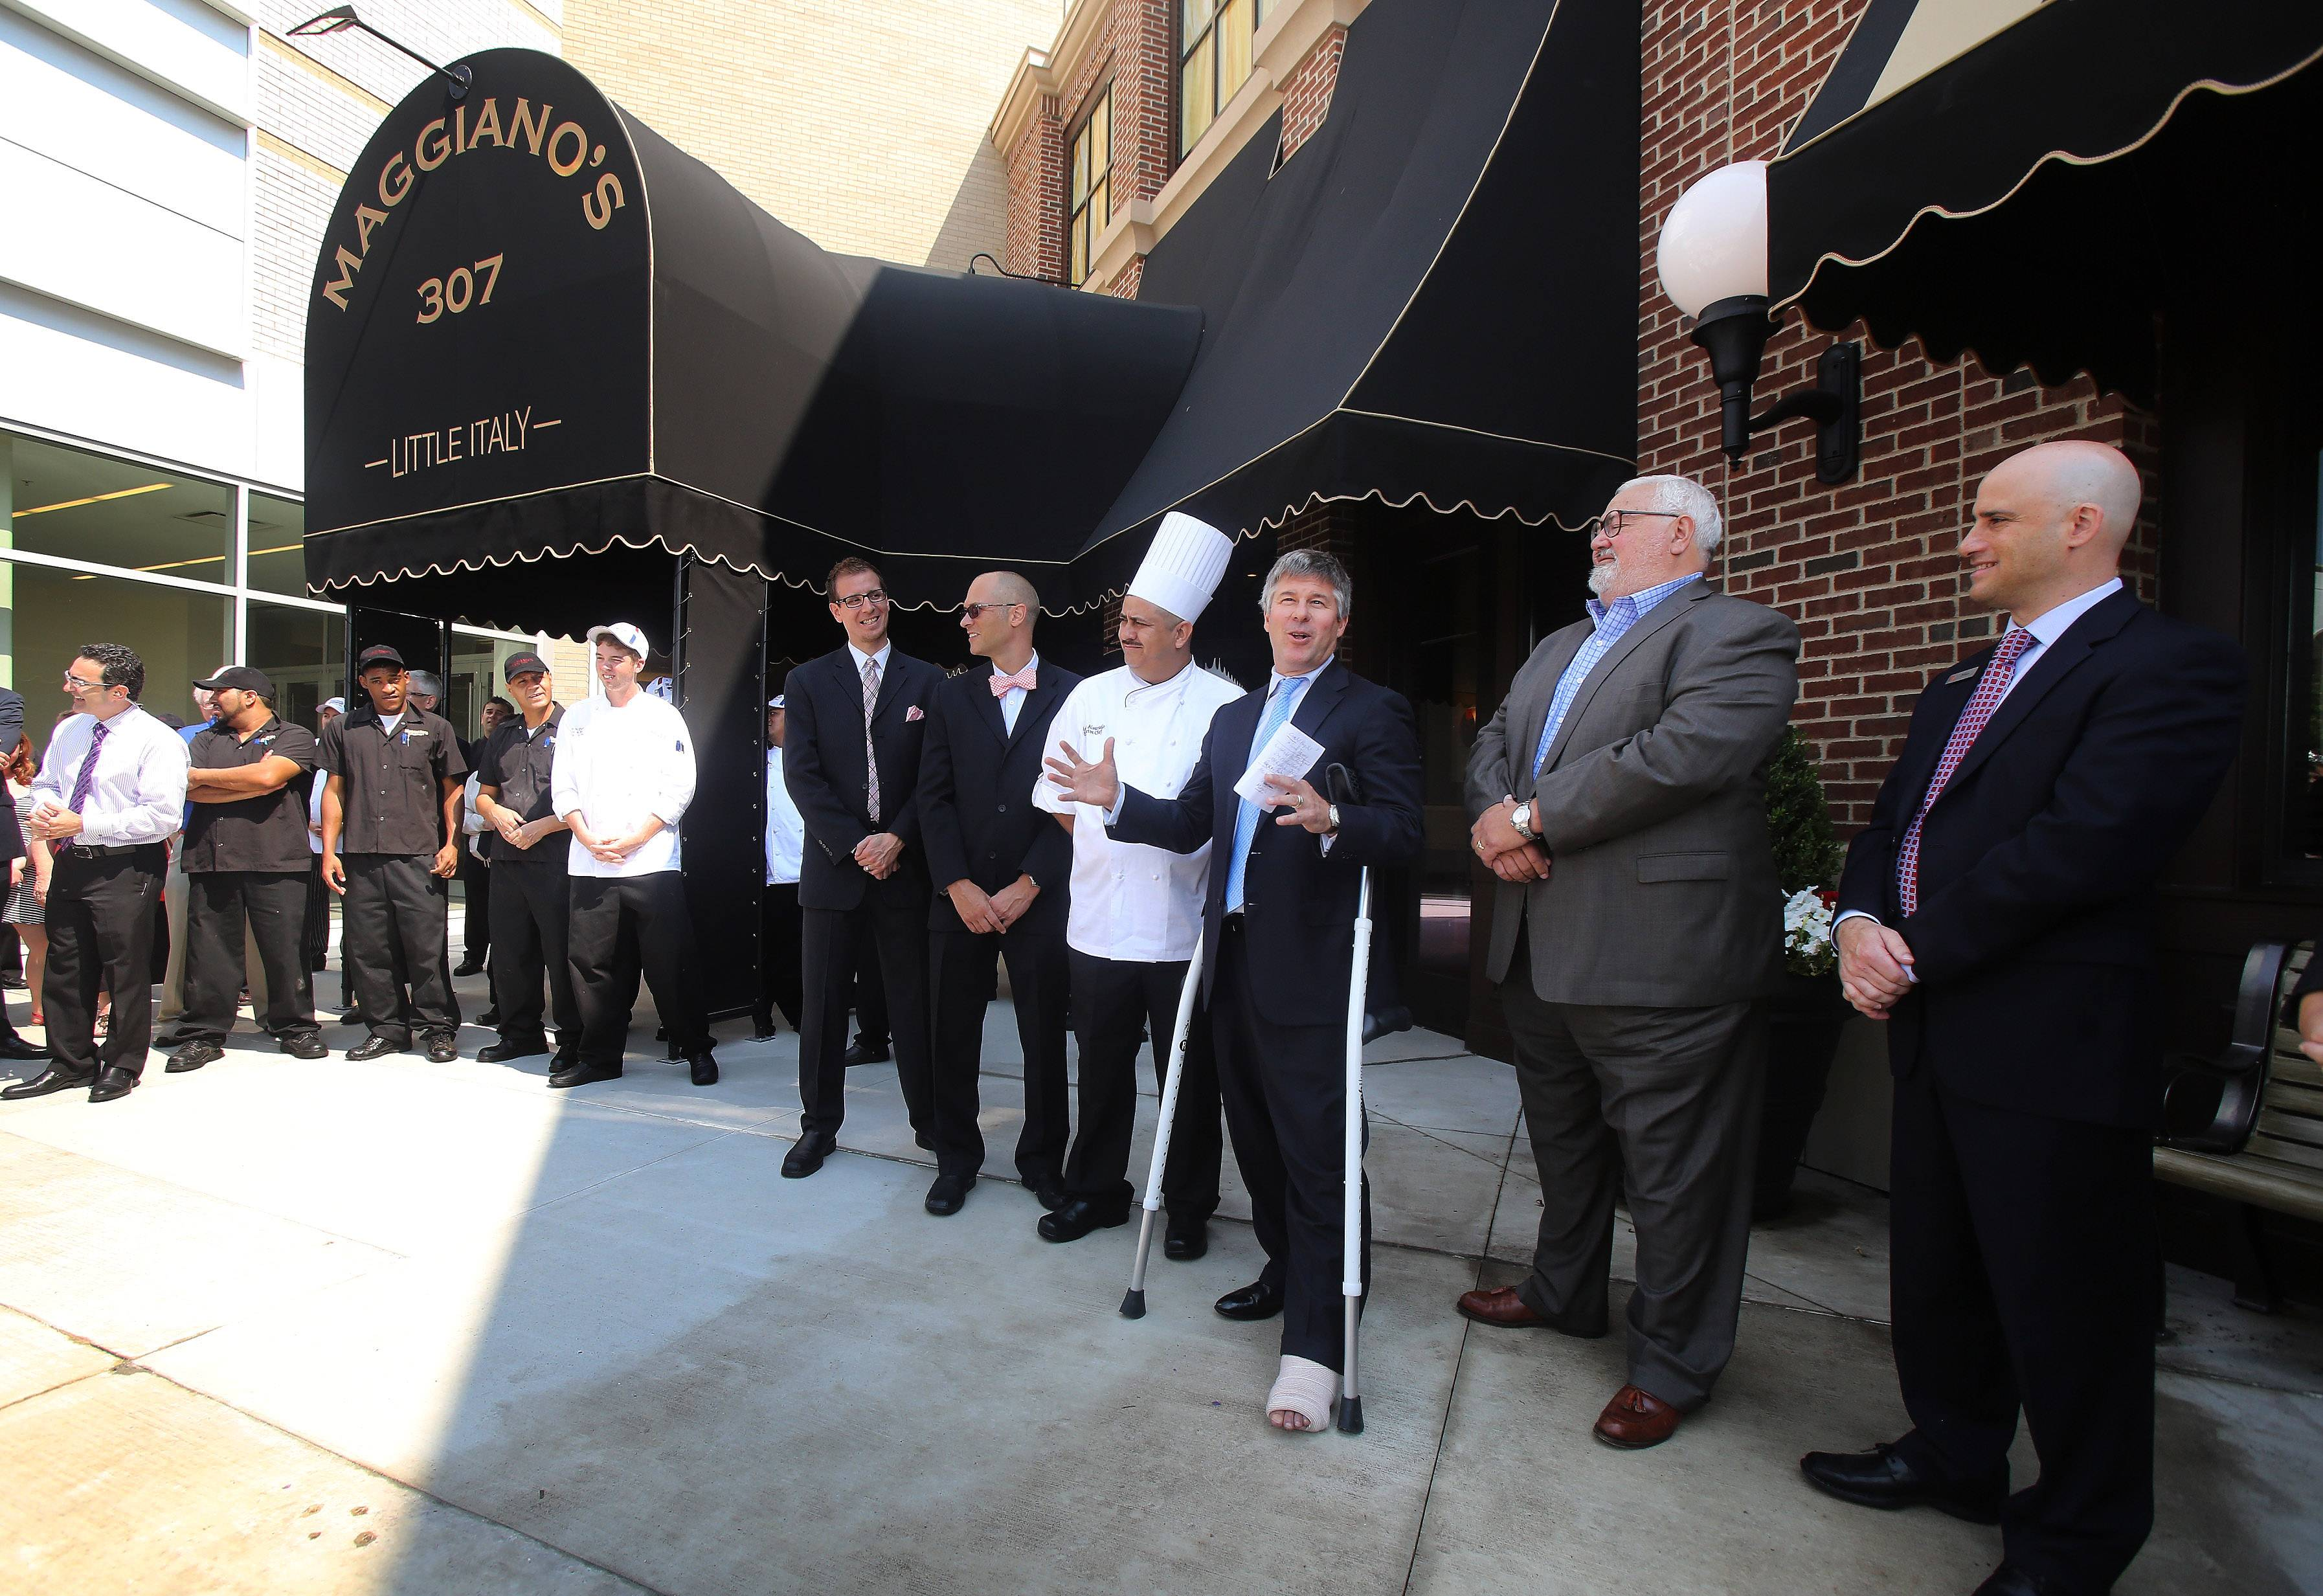 Maggiano's President Steve Provost speaks during the opening of Maggiano's Little Italy at Westfield Hawthorn shopping center Monday in Vernon Hills.